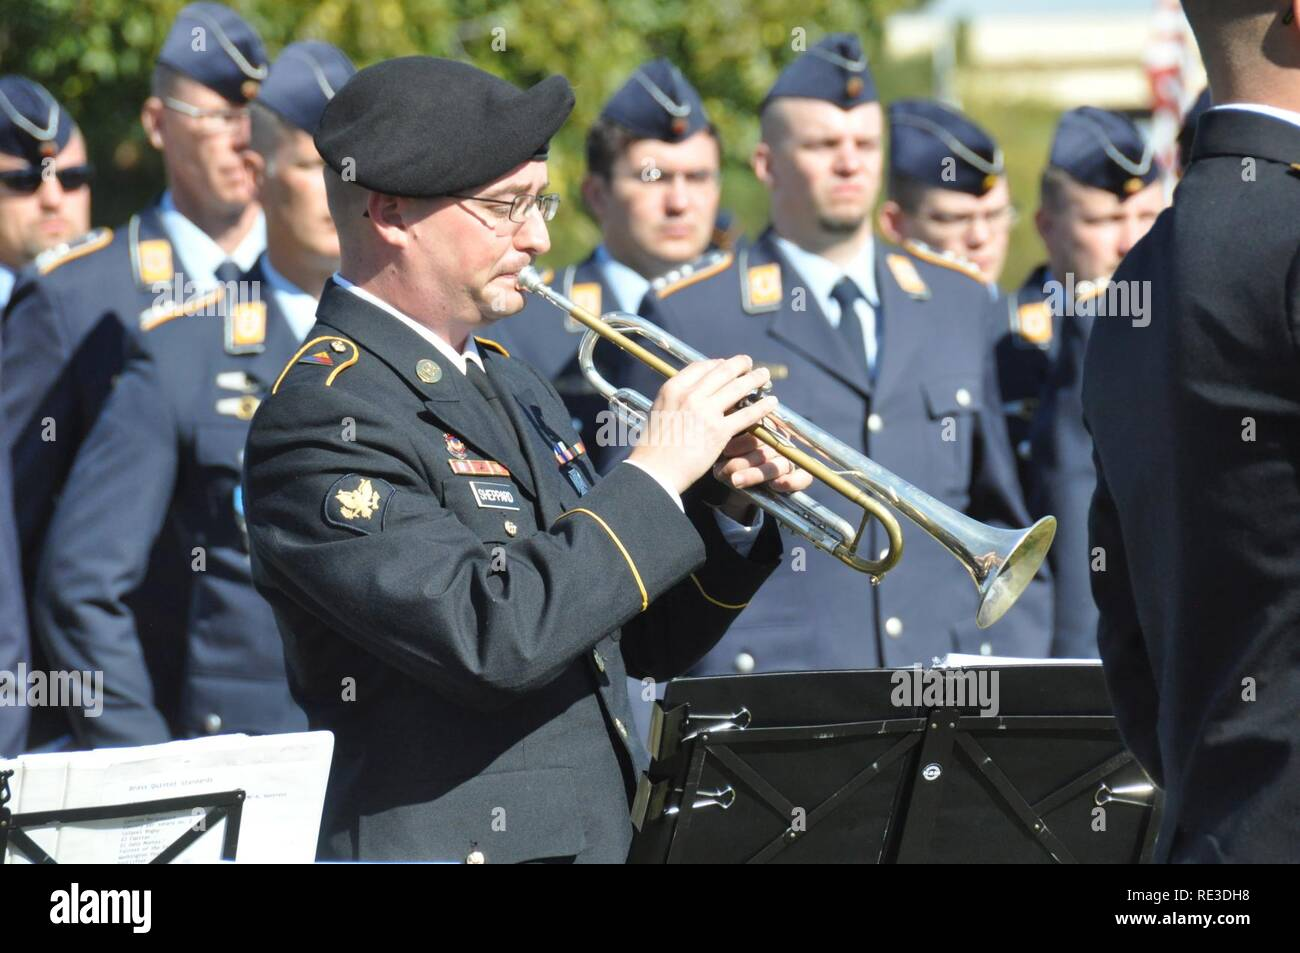 """Spc. Nathaniel Sheppard, assigned to the 1st Armored Division Band, plays """"Der Gute Kamerad"""" during the German National Day of Mourning ceremony at Fort Bliss National Cemetery Nov. 13, 2016. - Stock Image"""